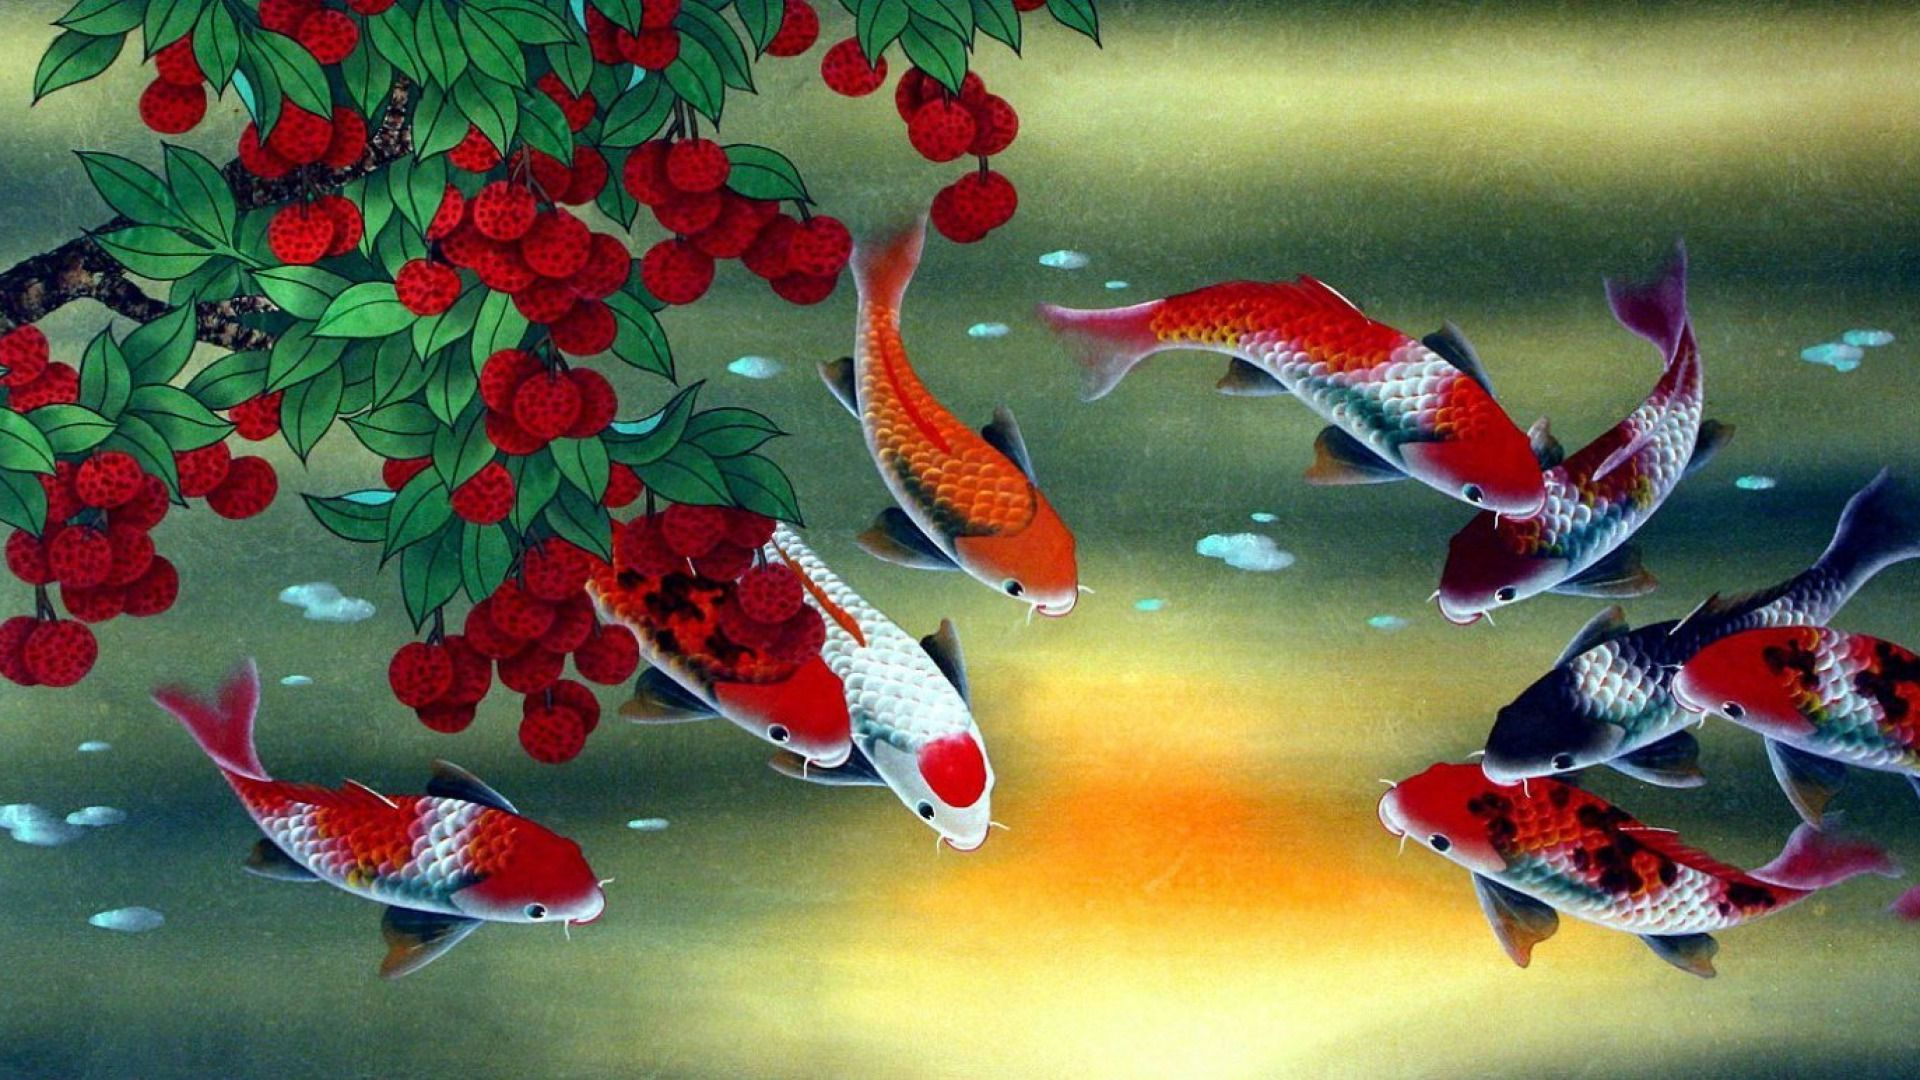 Kois Water Lychee Feng Shui Wallpapers Fish Painting Fruit Painting Fish Wallpaper